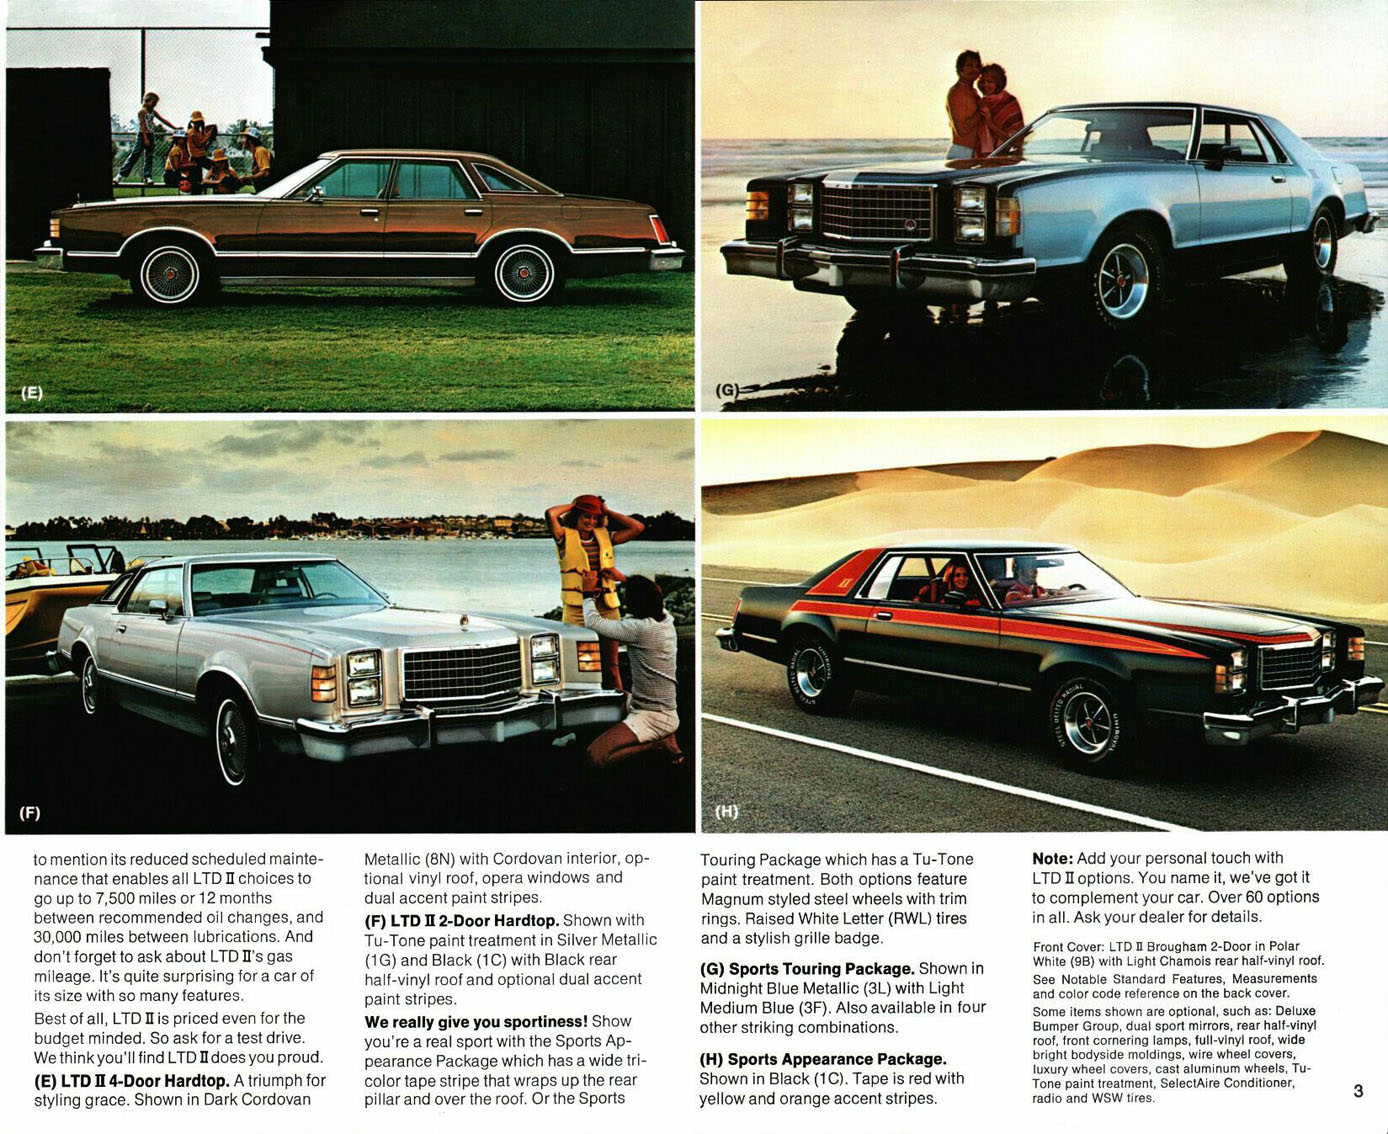 Ford LTD 2 Sport http://storm.oldcarmanualproject.com/fordltd1979.htm